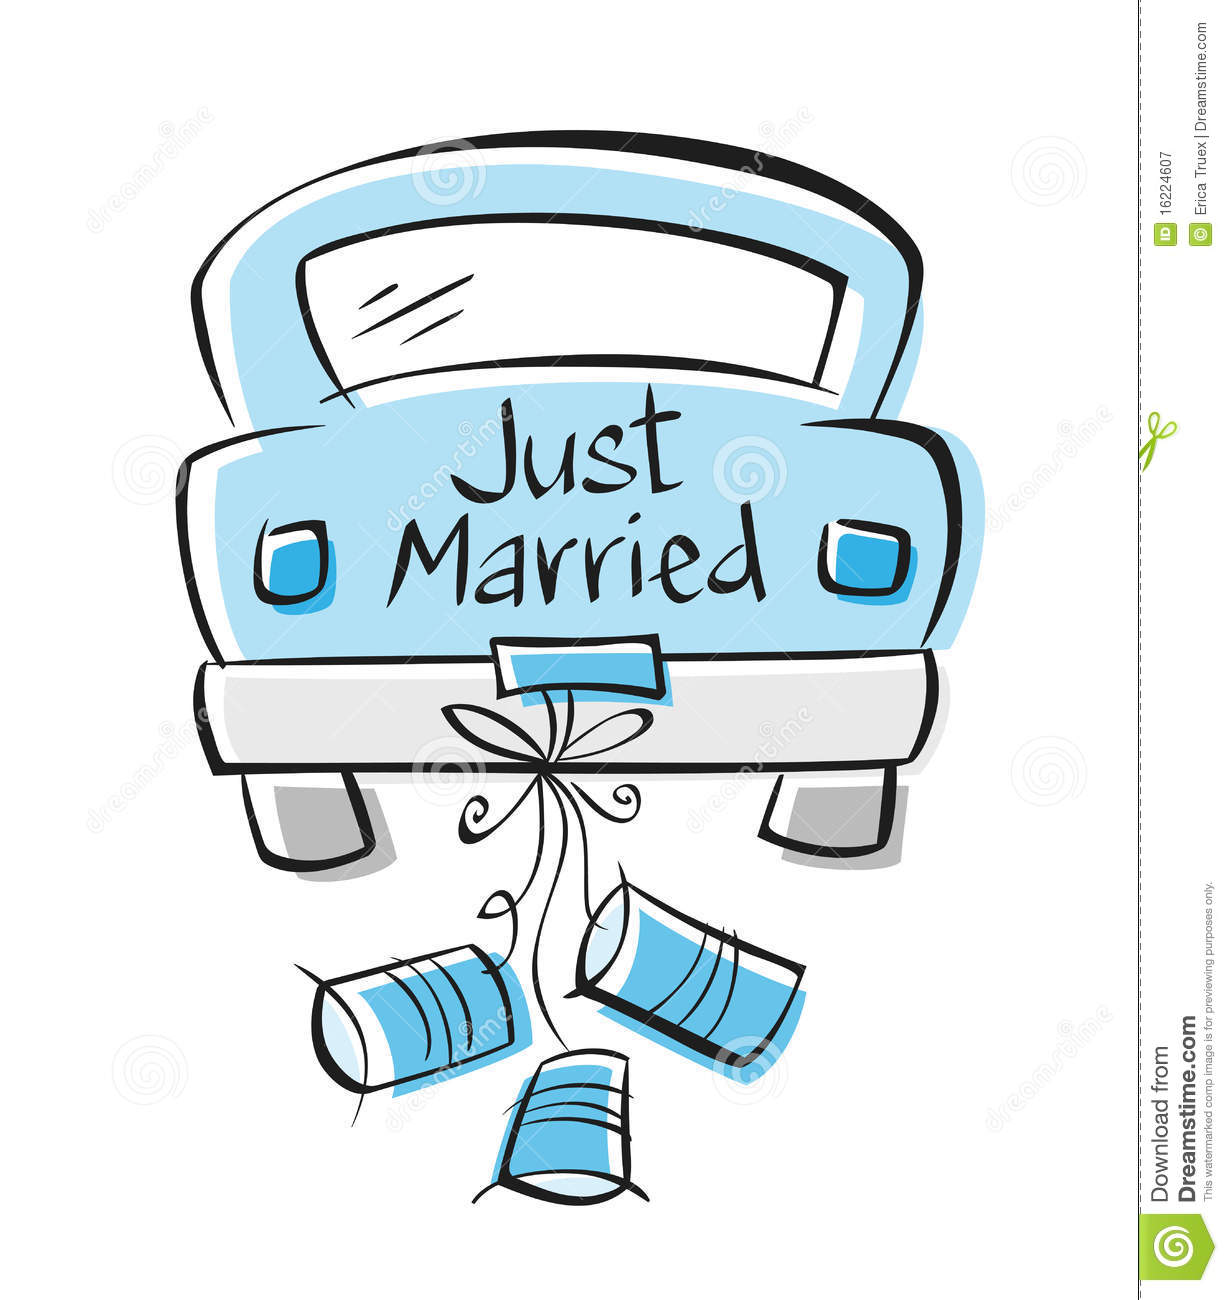 Just married auto clipart 6  Clipart Station